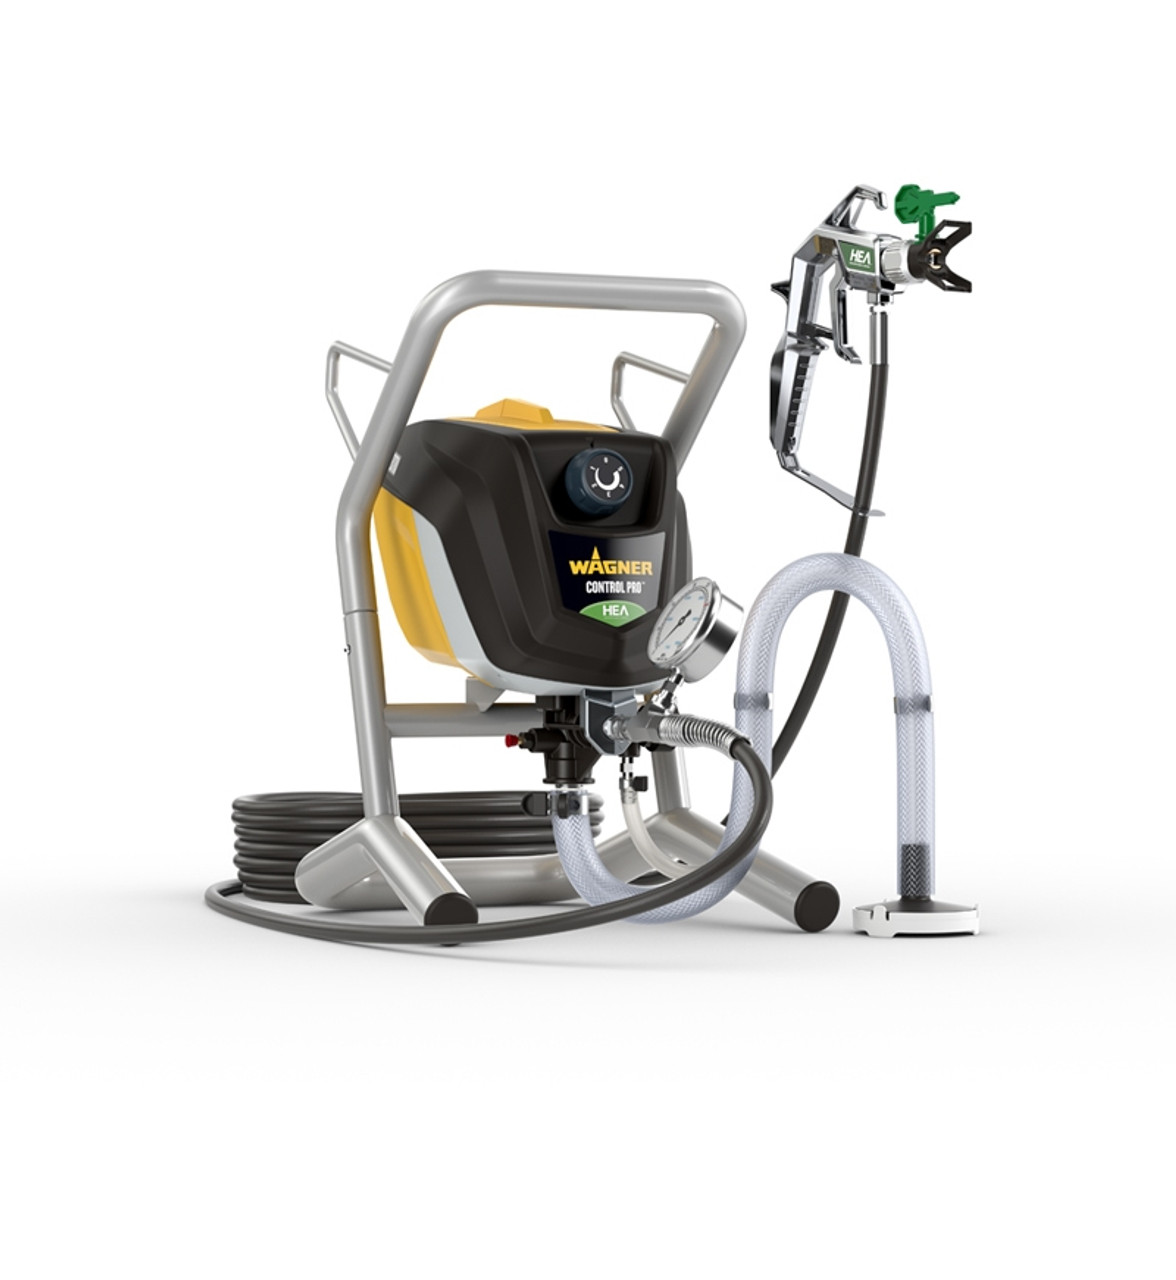 Wagner Control Pro 350 Extra - The Next Generation Of Airless Spraying